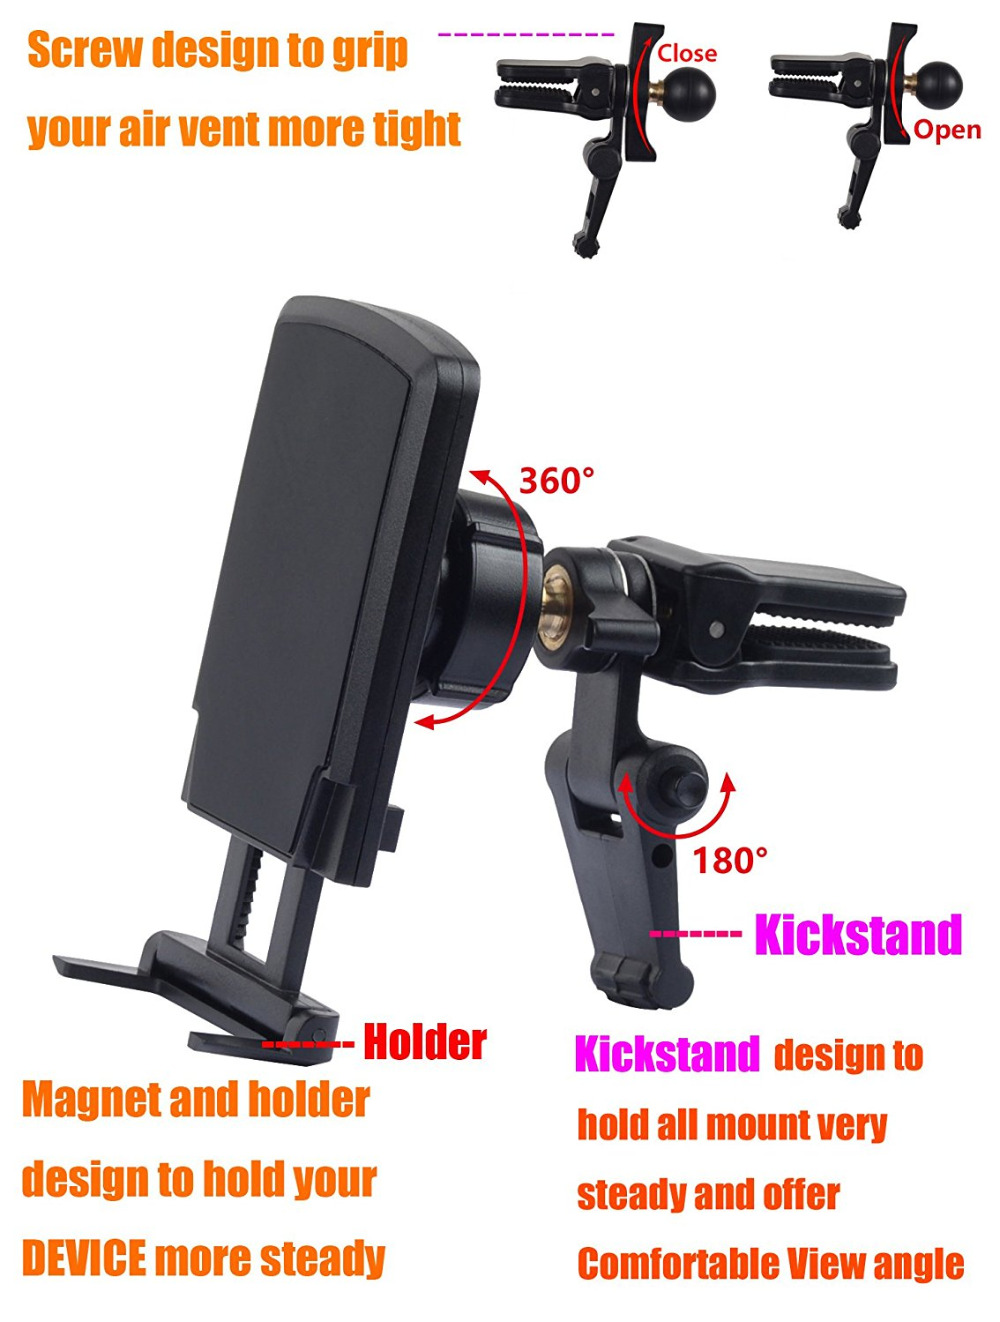 New Universal Device Fits For iPhone 7/plus /SE/6s.samsung Samsung Galaxy S7 note 7and all other cell phones and GPS Navigator